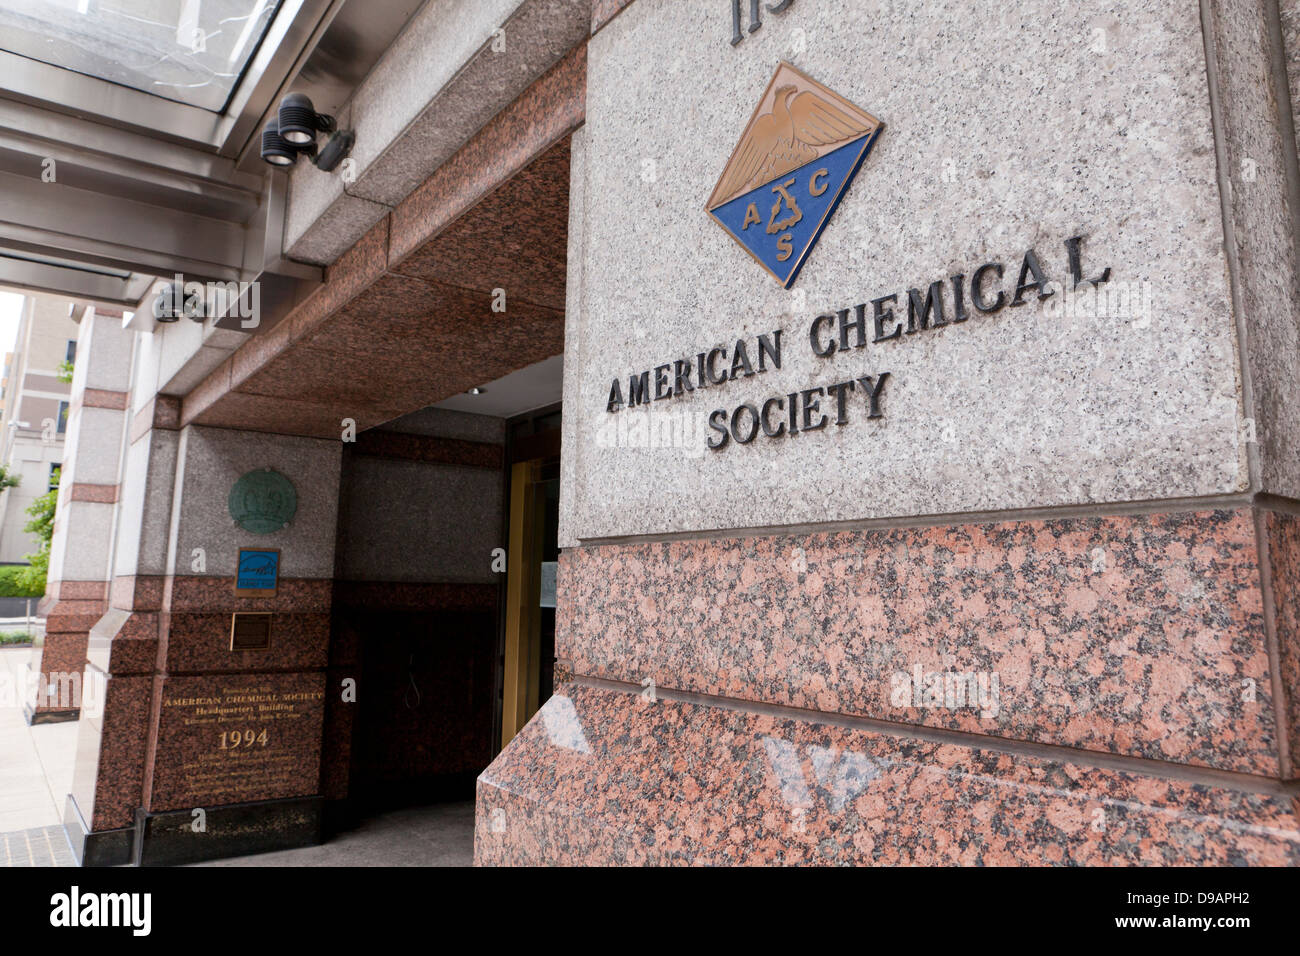 L'American Chemical Society building - Washington, DC USA Photo Stock